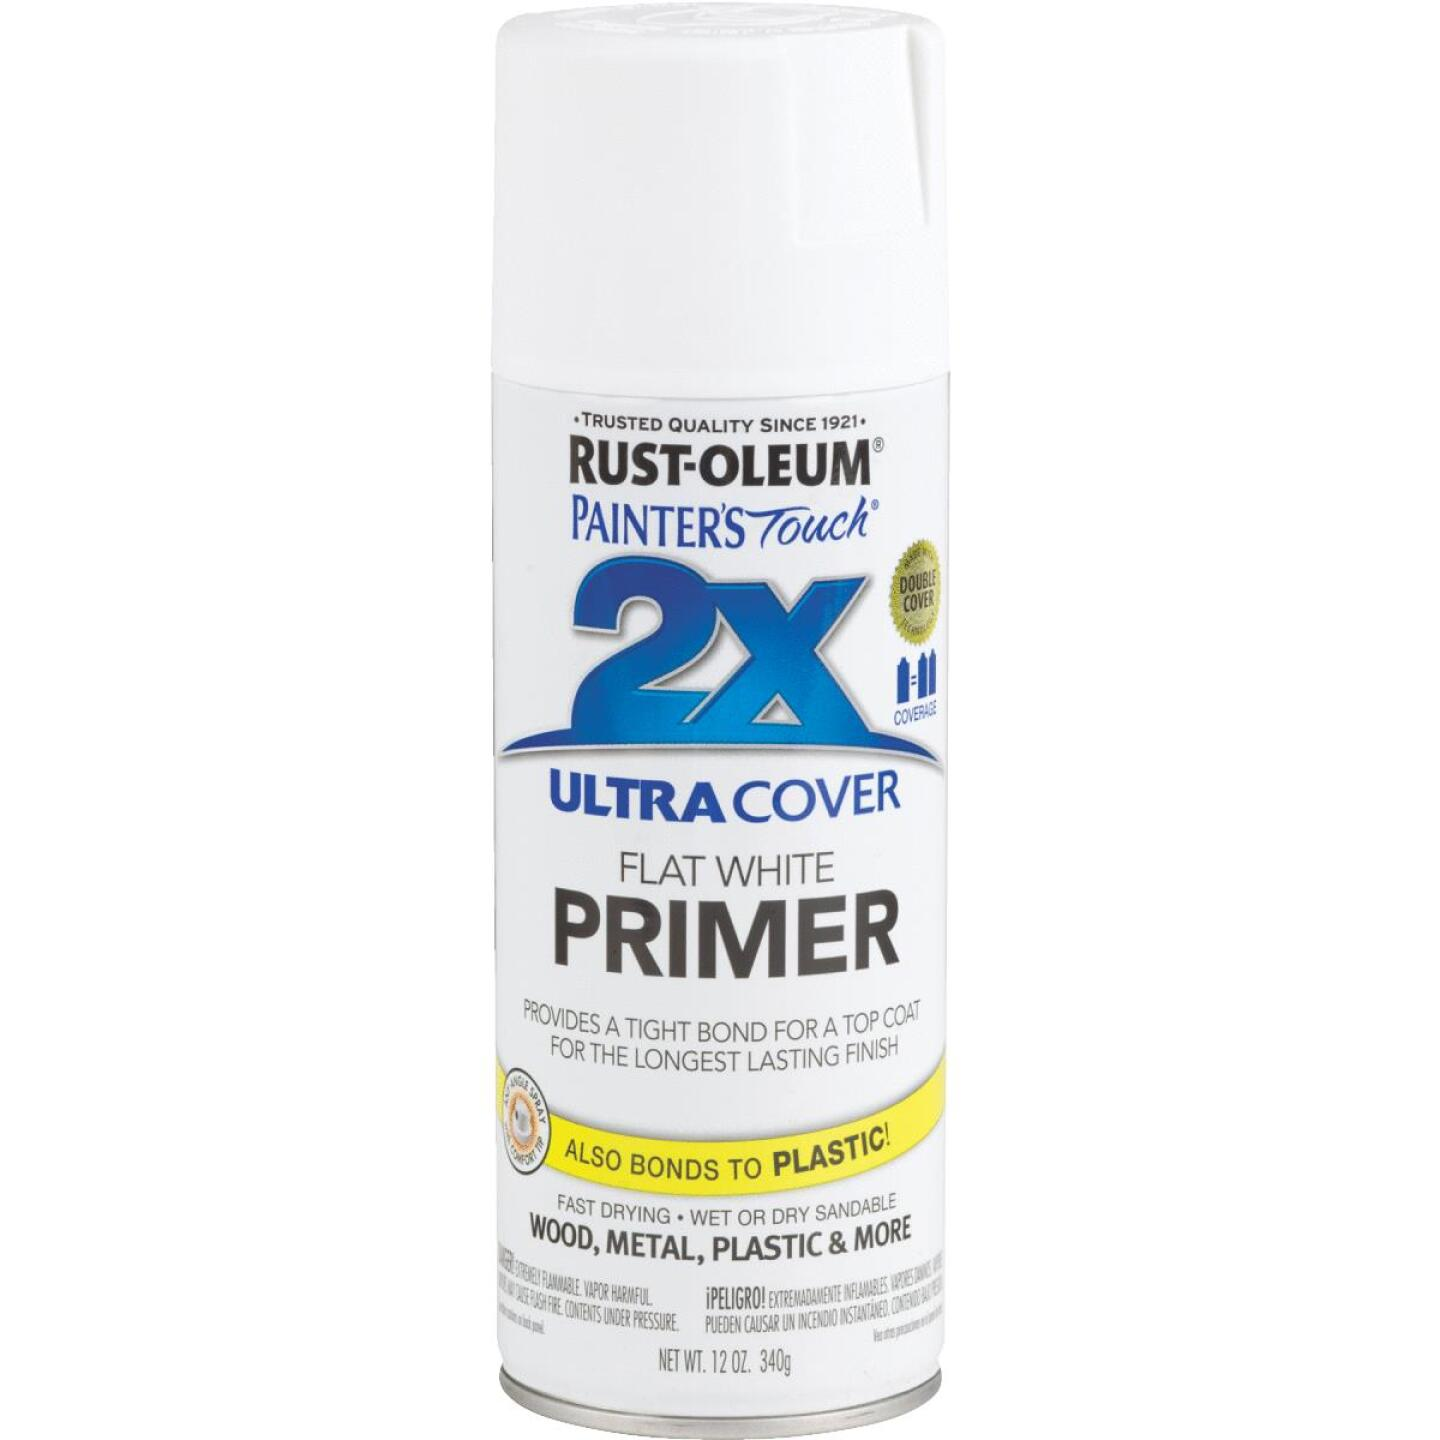 Rustoleum Painter's Touch 2X Ultra Cover White Spray Paint Primer Image 1